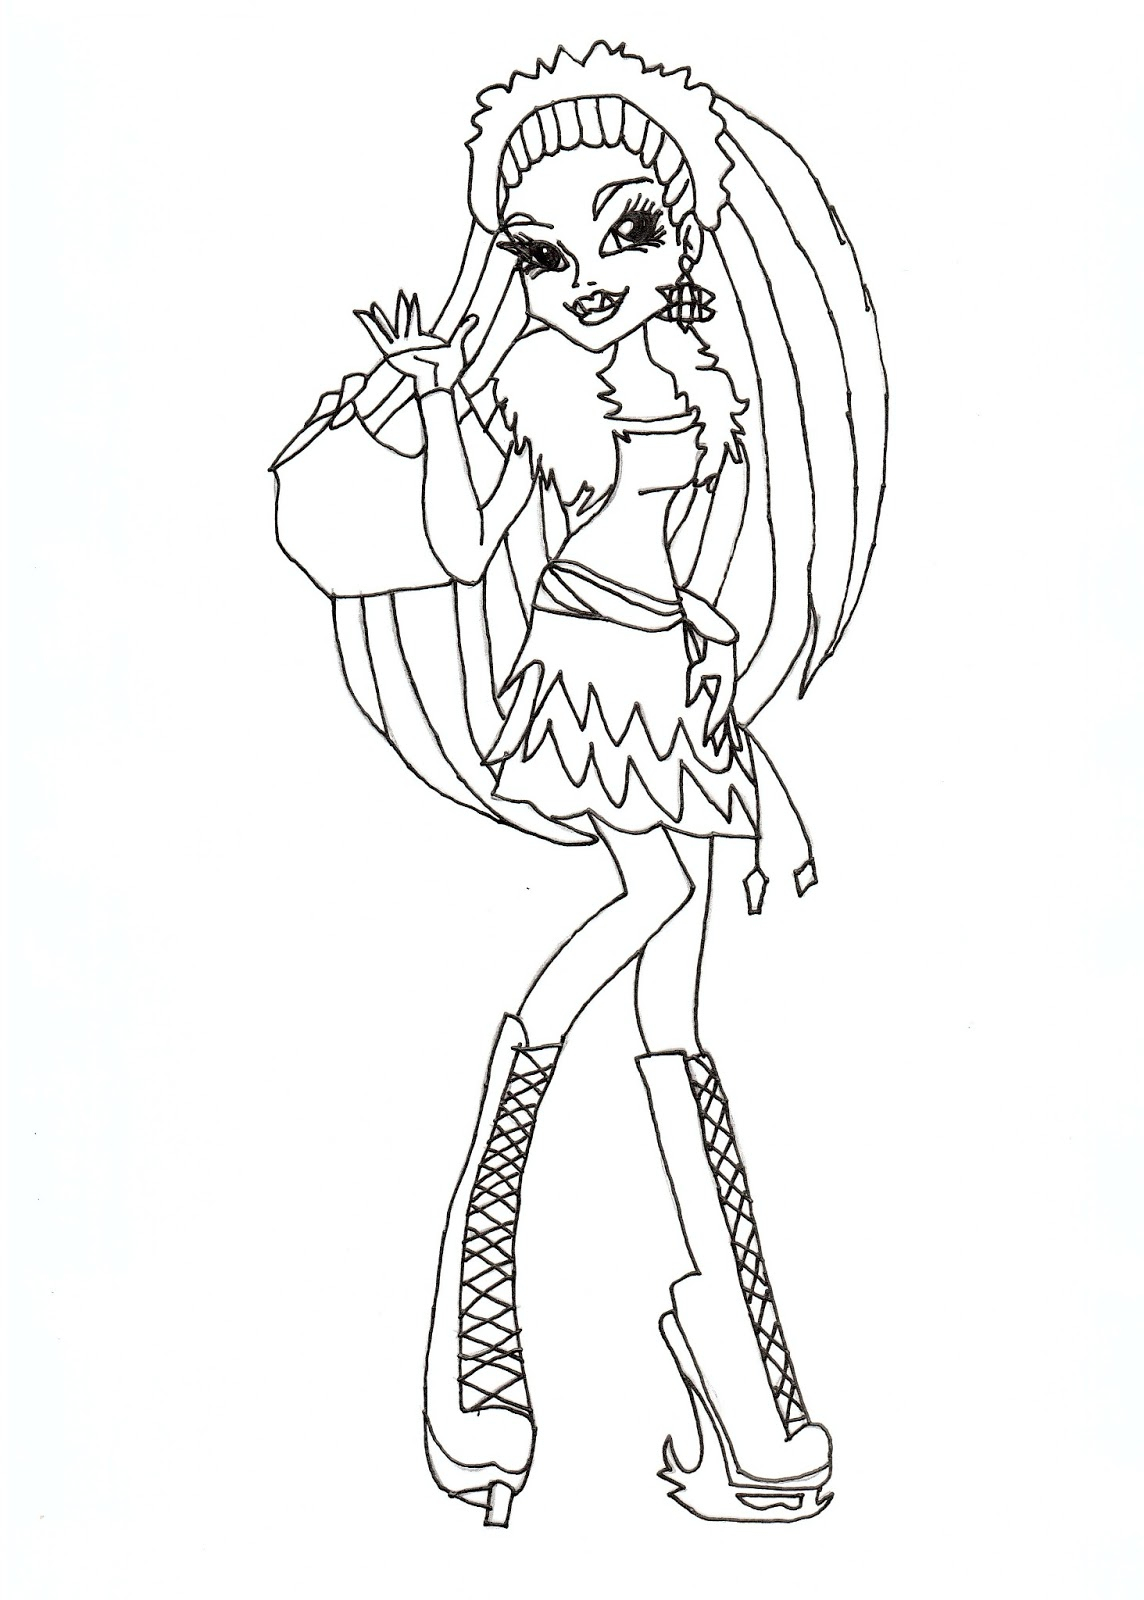 Inspiring Idea Monster High Coloring Pages 2 to Print Color Printable Of Wydowna Spider by Elfkena On Deviantart to Print